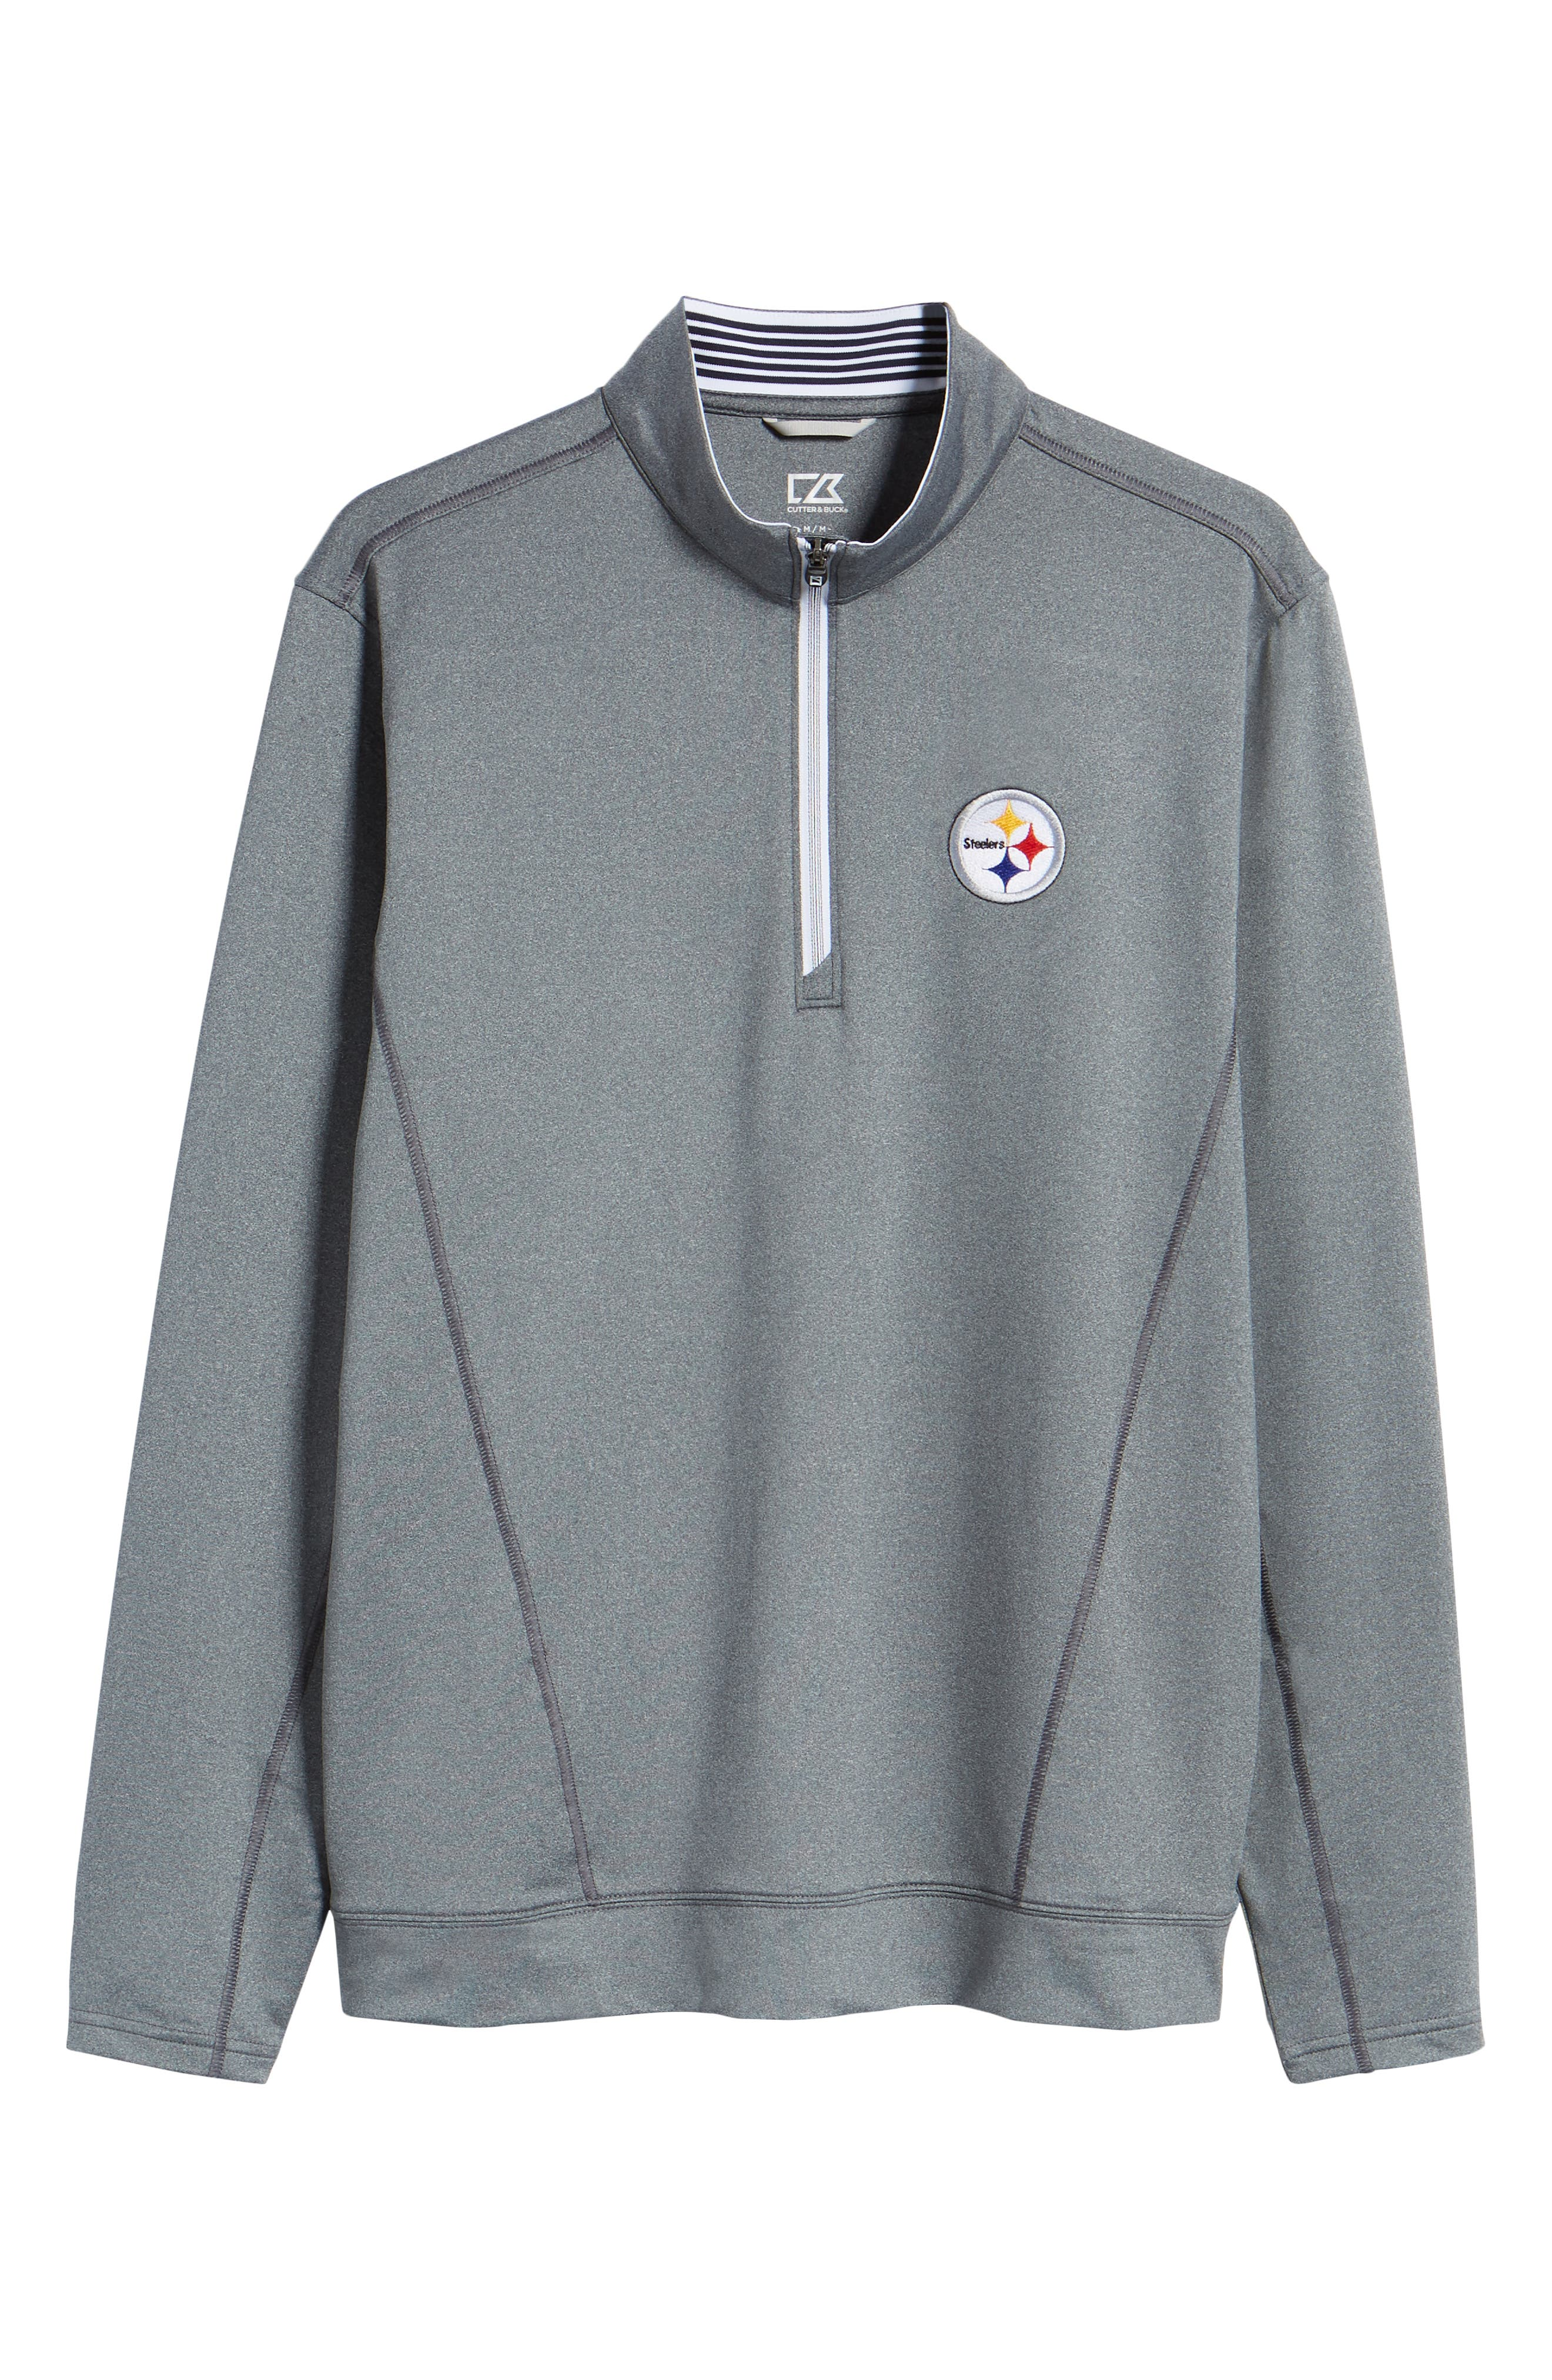 Endurance Pittsburgh Steelers Regular Fit Pullover,                             Alternate thumbnail 6, color,                             CHARCOAL HEATHER